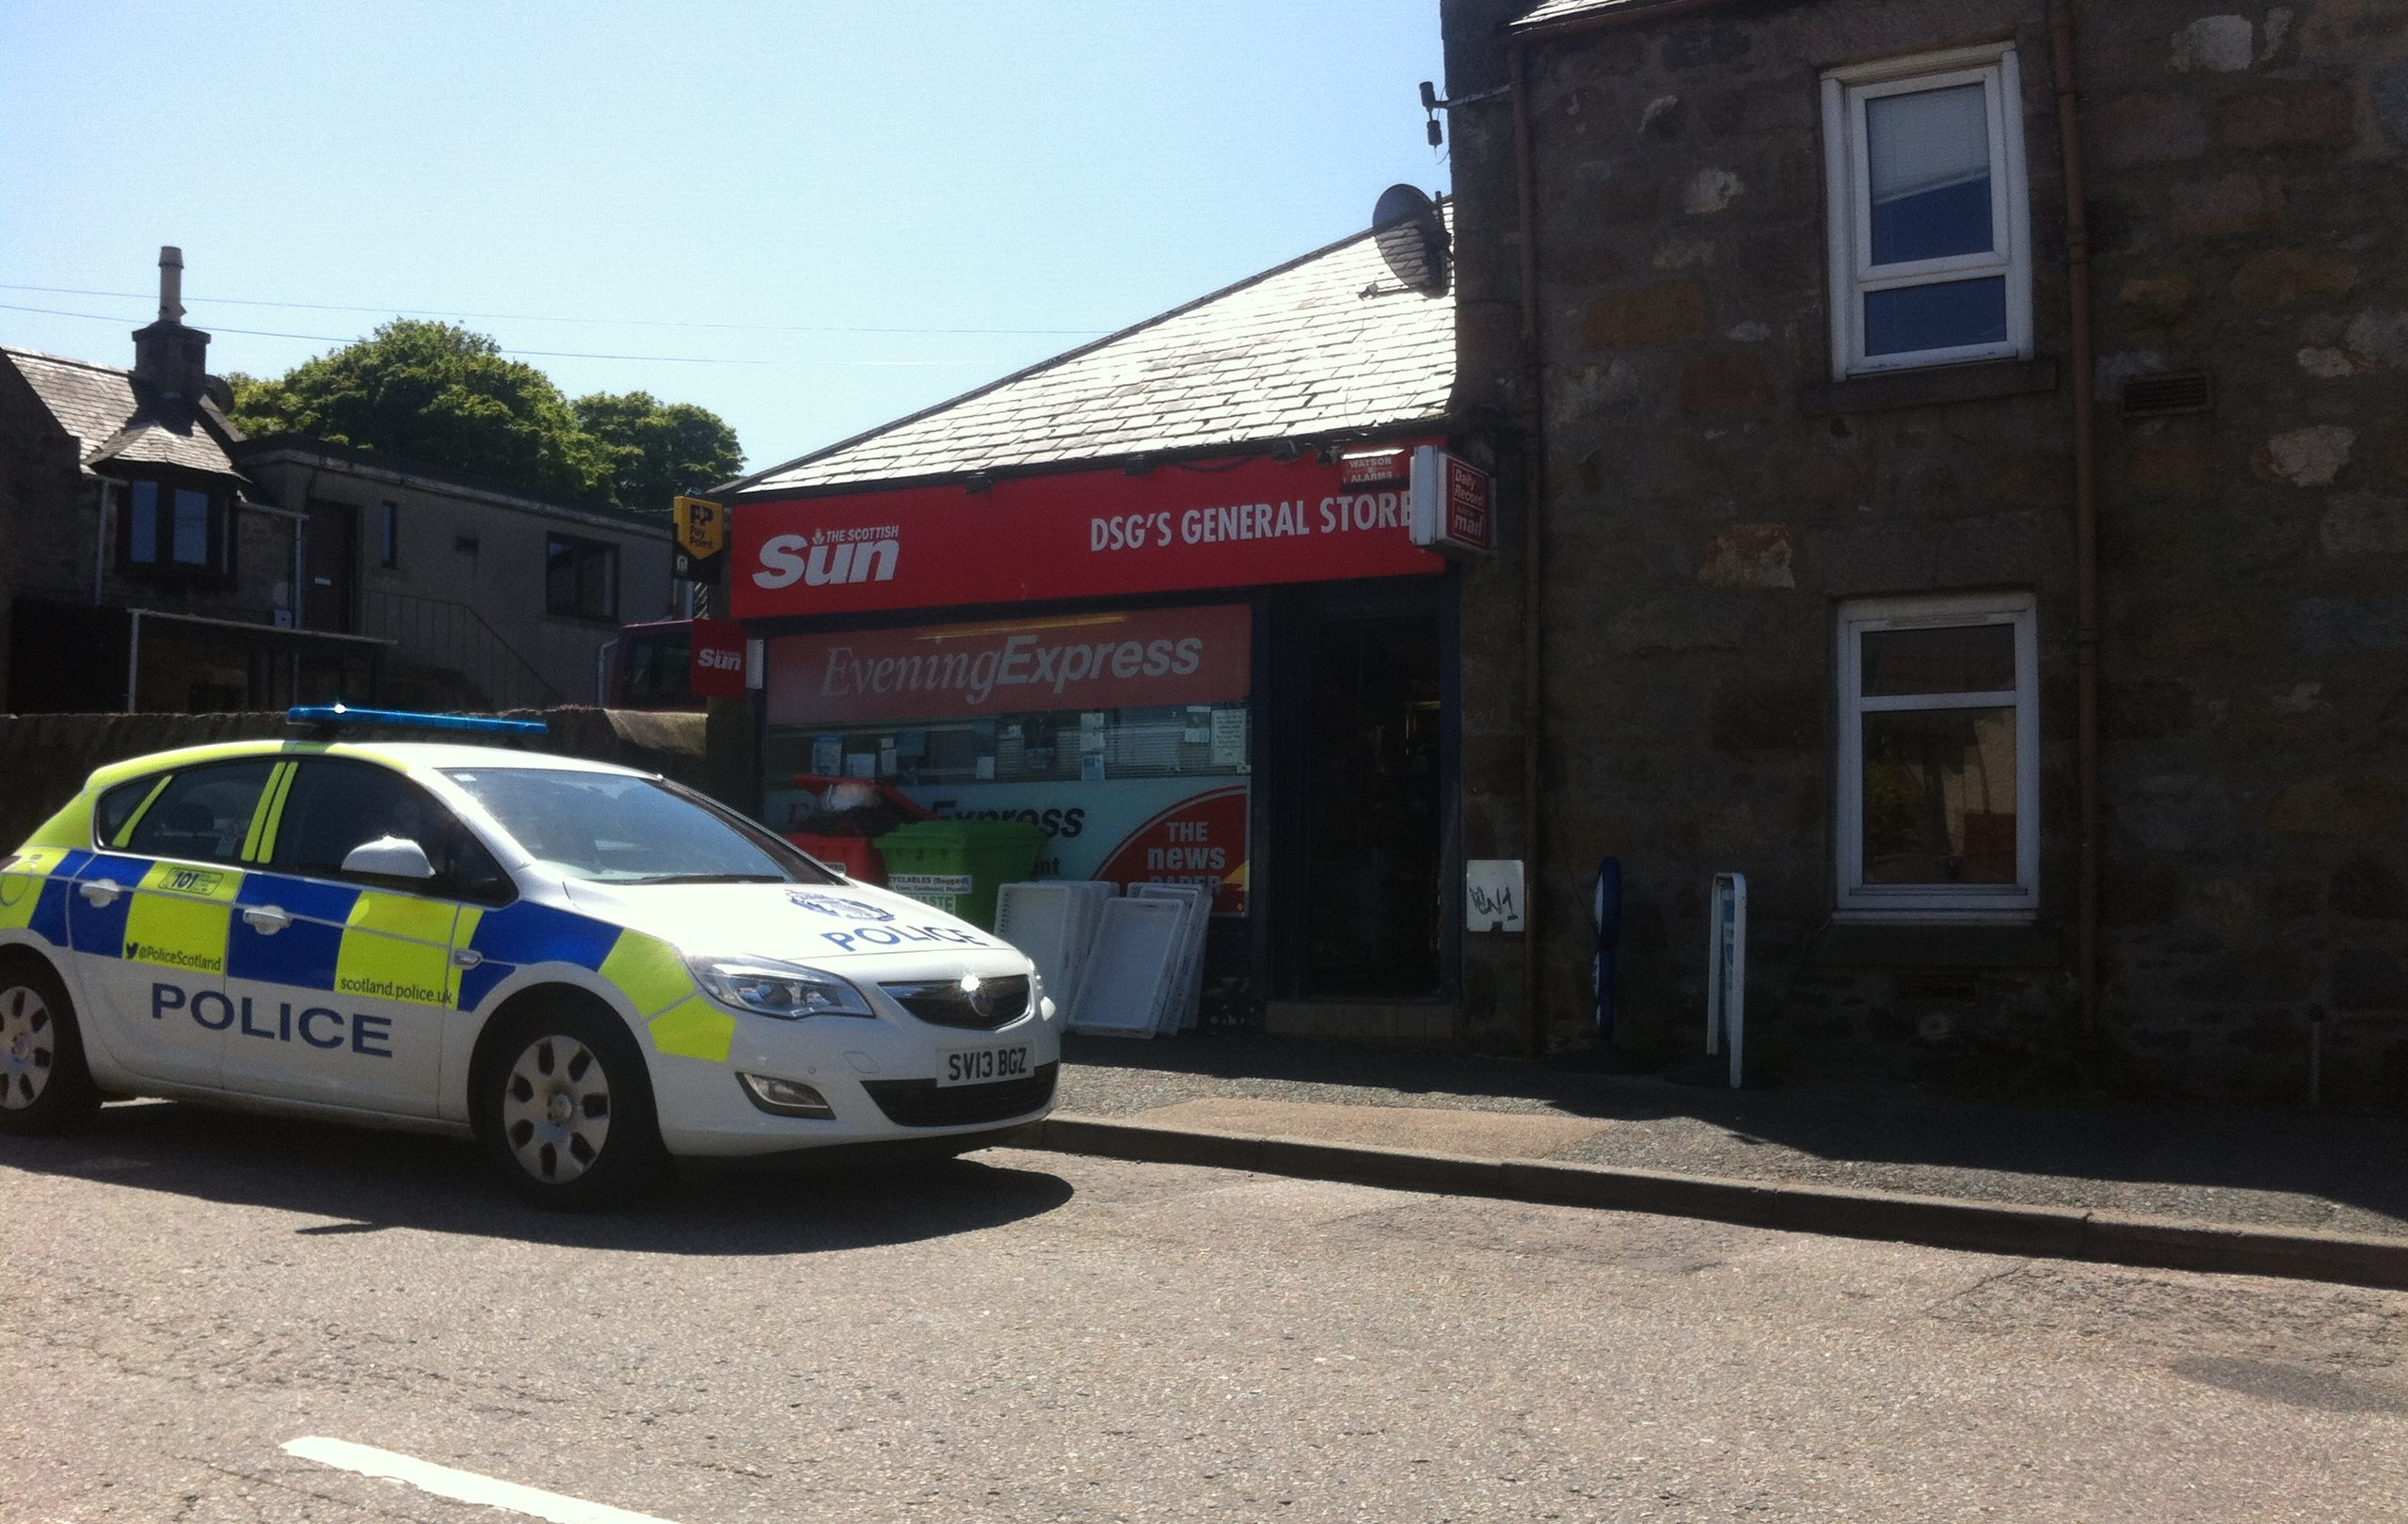 The alleged robbery happened at DSG's General Store in Bucksburn.